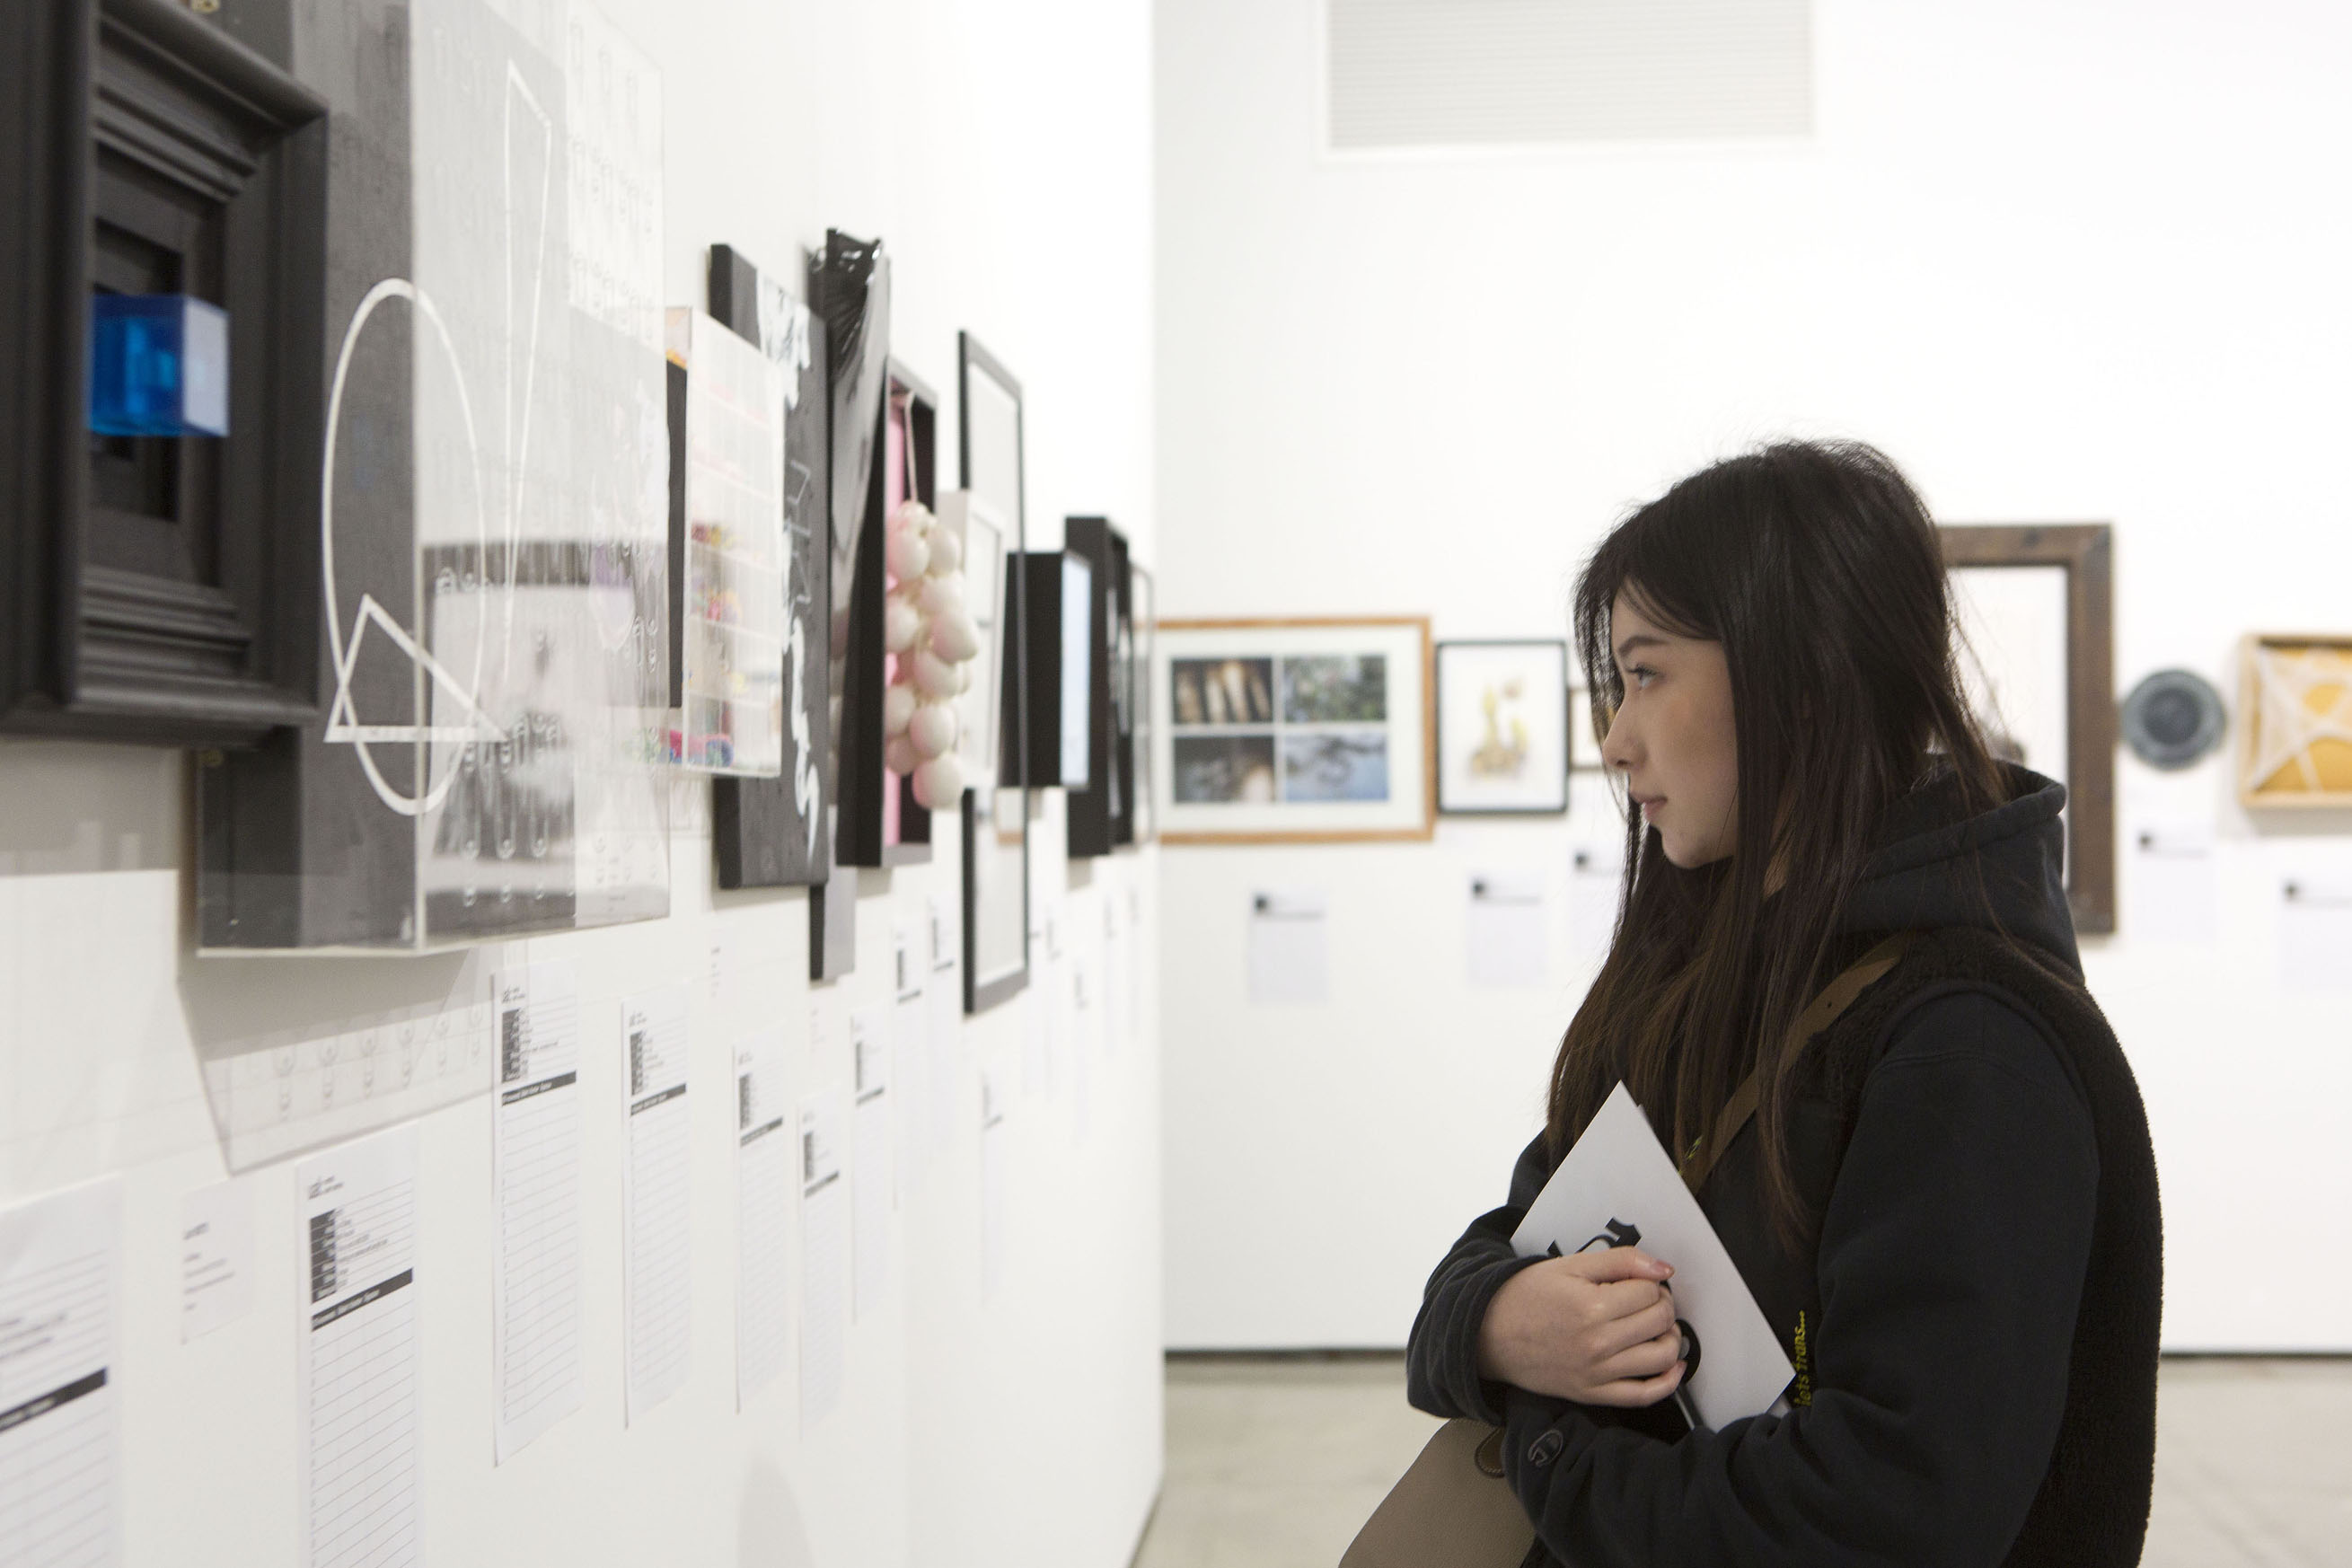 side profile image of a woman looks at artwork on a gallery wall